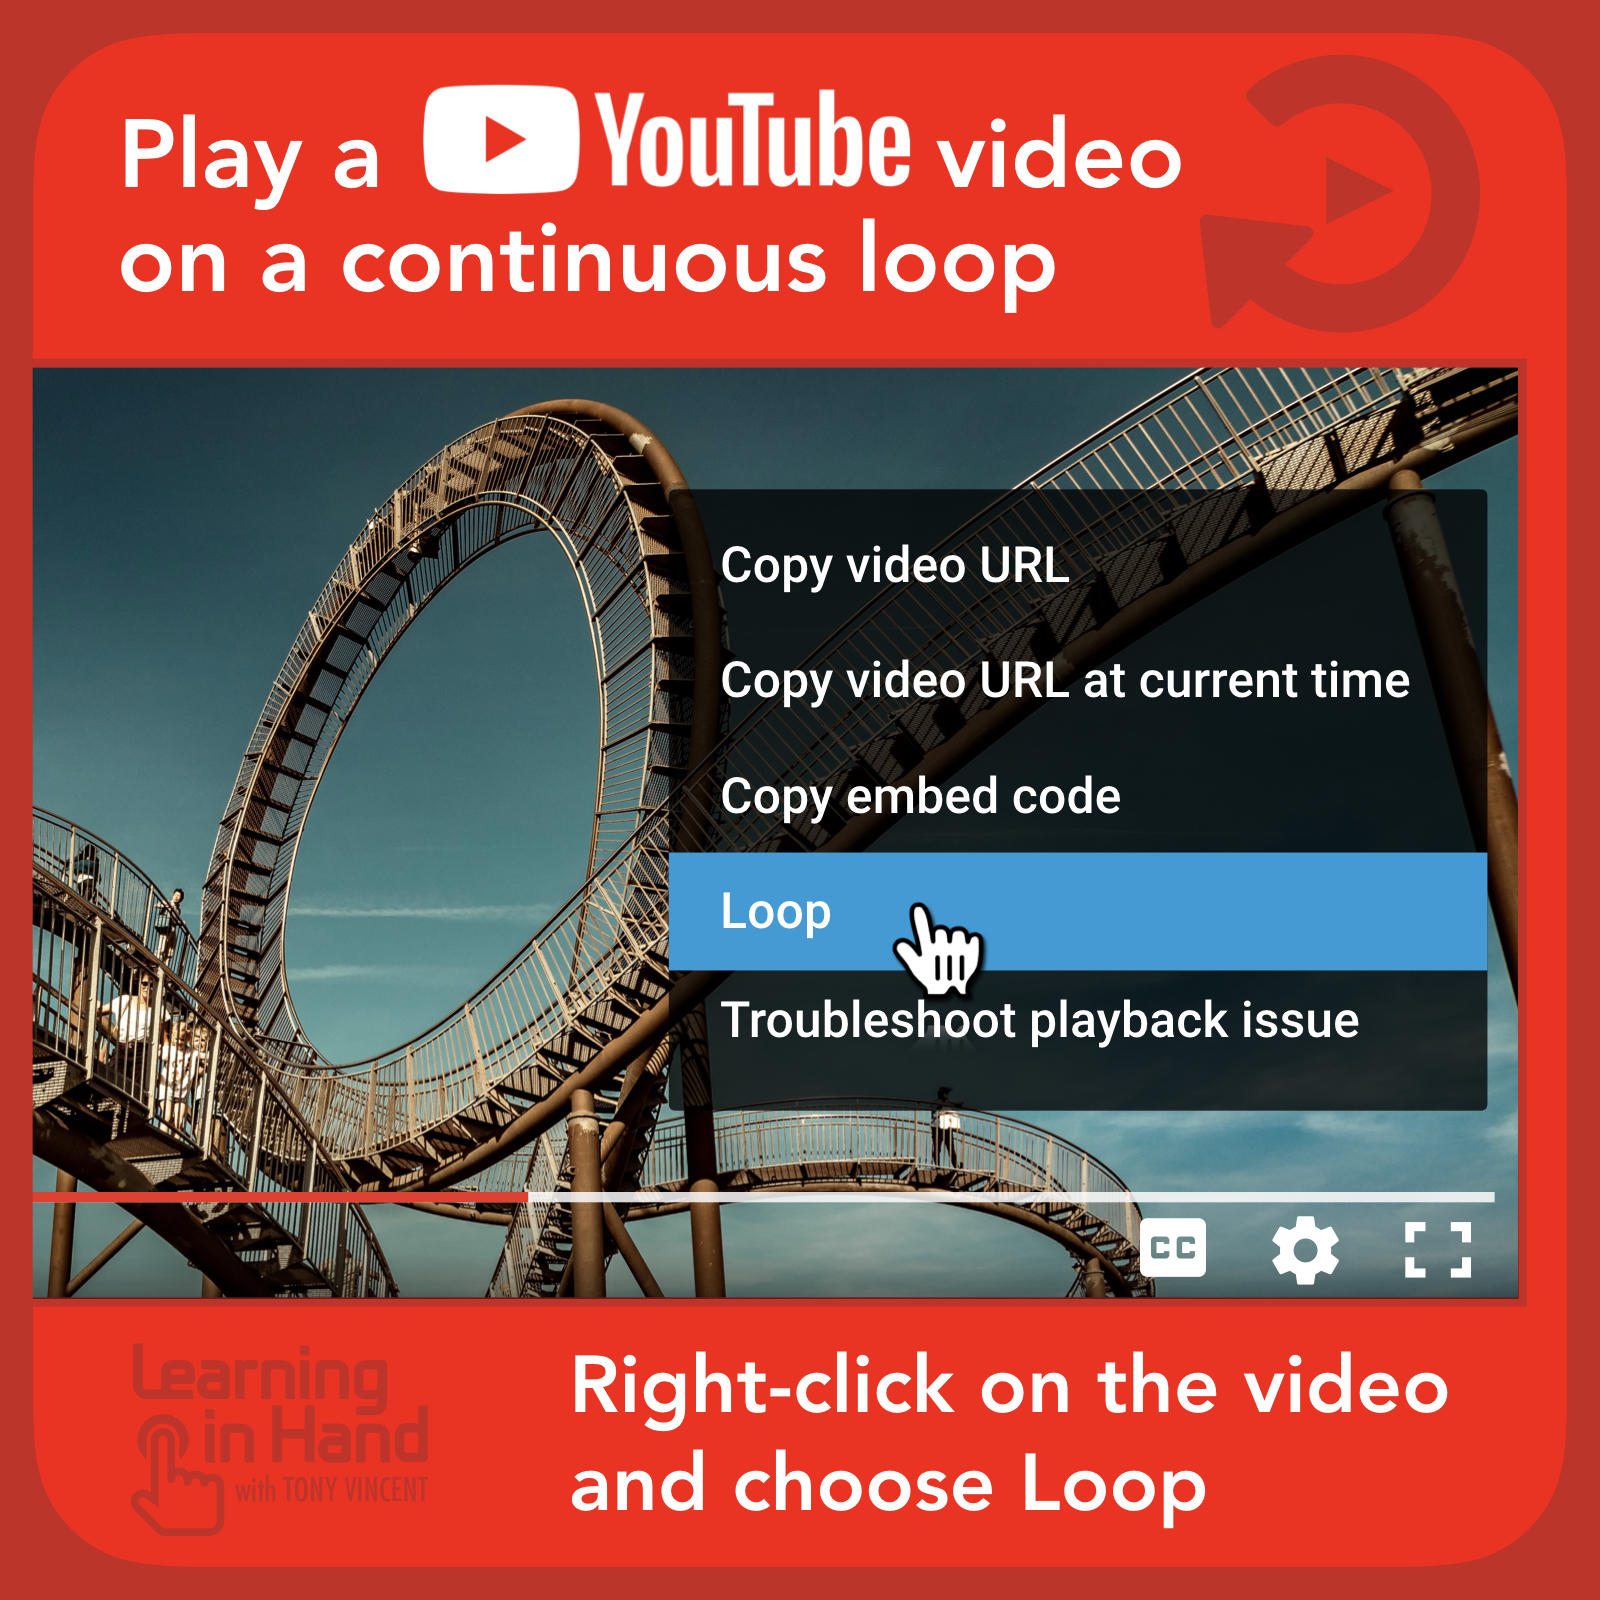 So you want a video to continuously repeat? You can do that with YouTube! When a video is playing, right-click (or click with two fingers) anywhere on the video. A menu appears and one of the options is Loop.